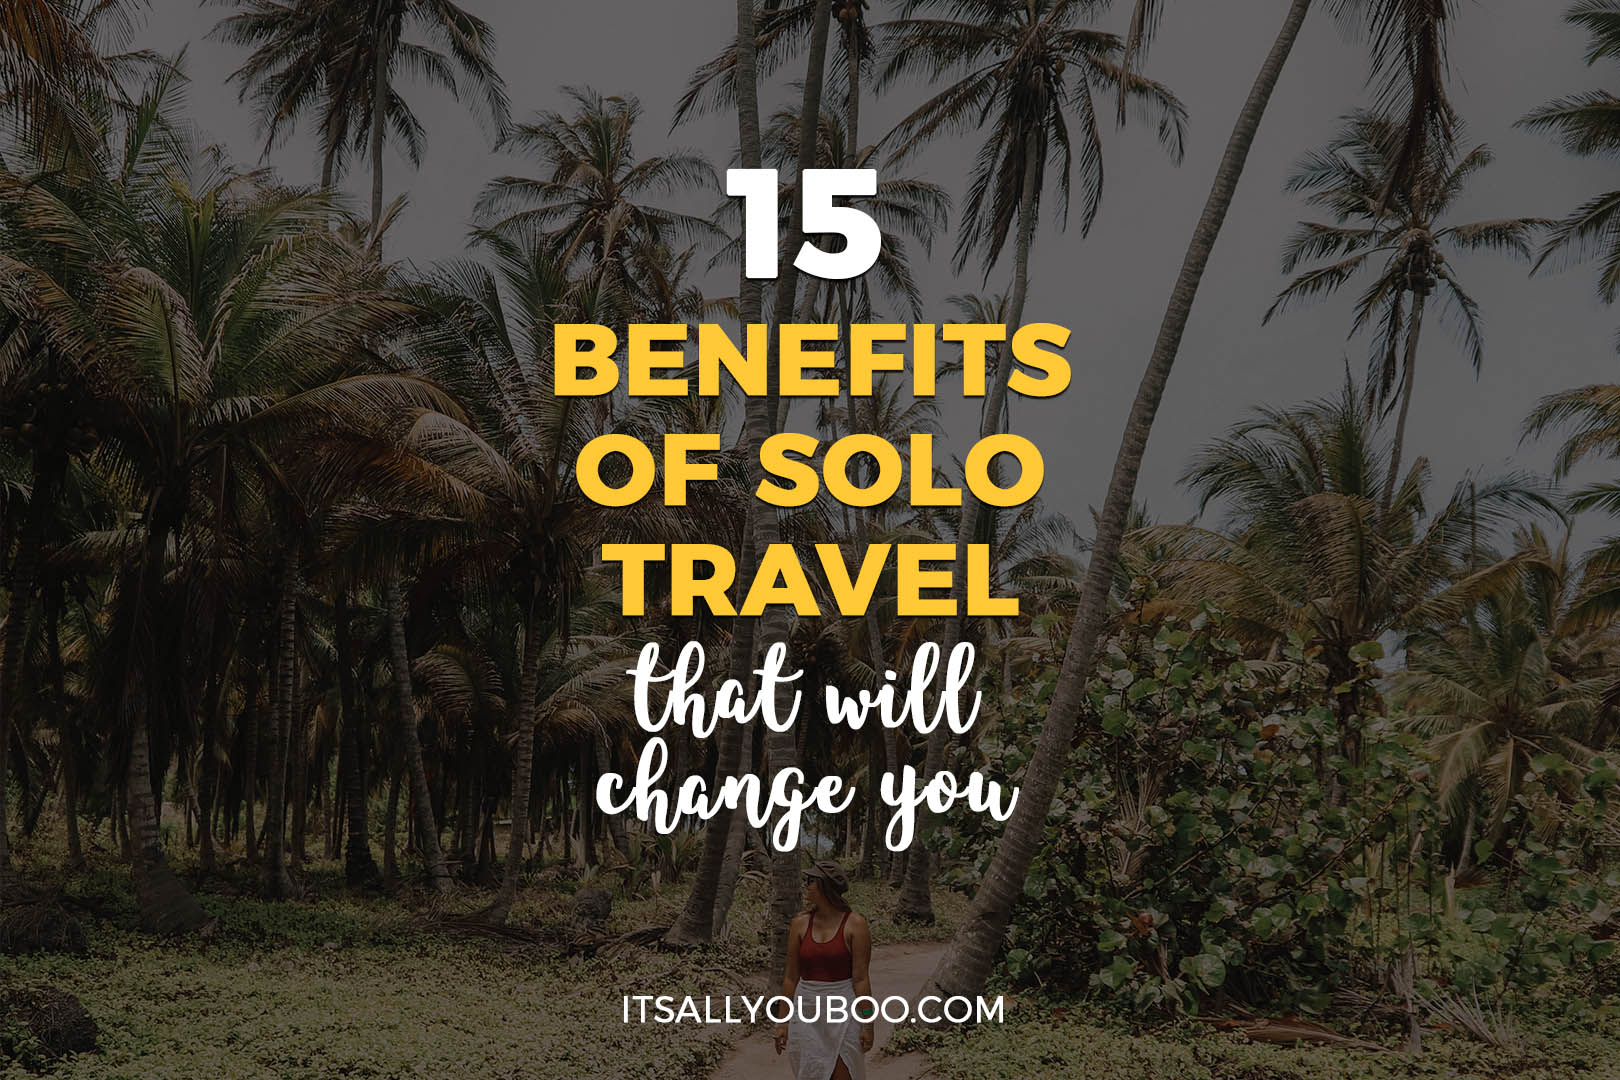 15 Benefits of Solo Travel That Will Change You